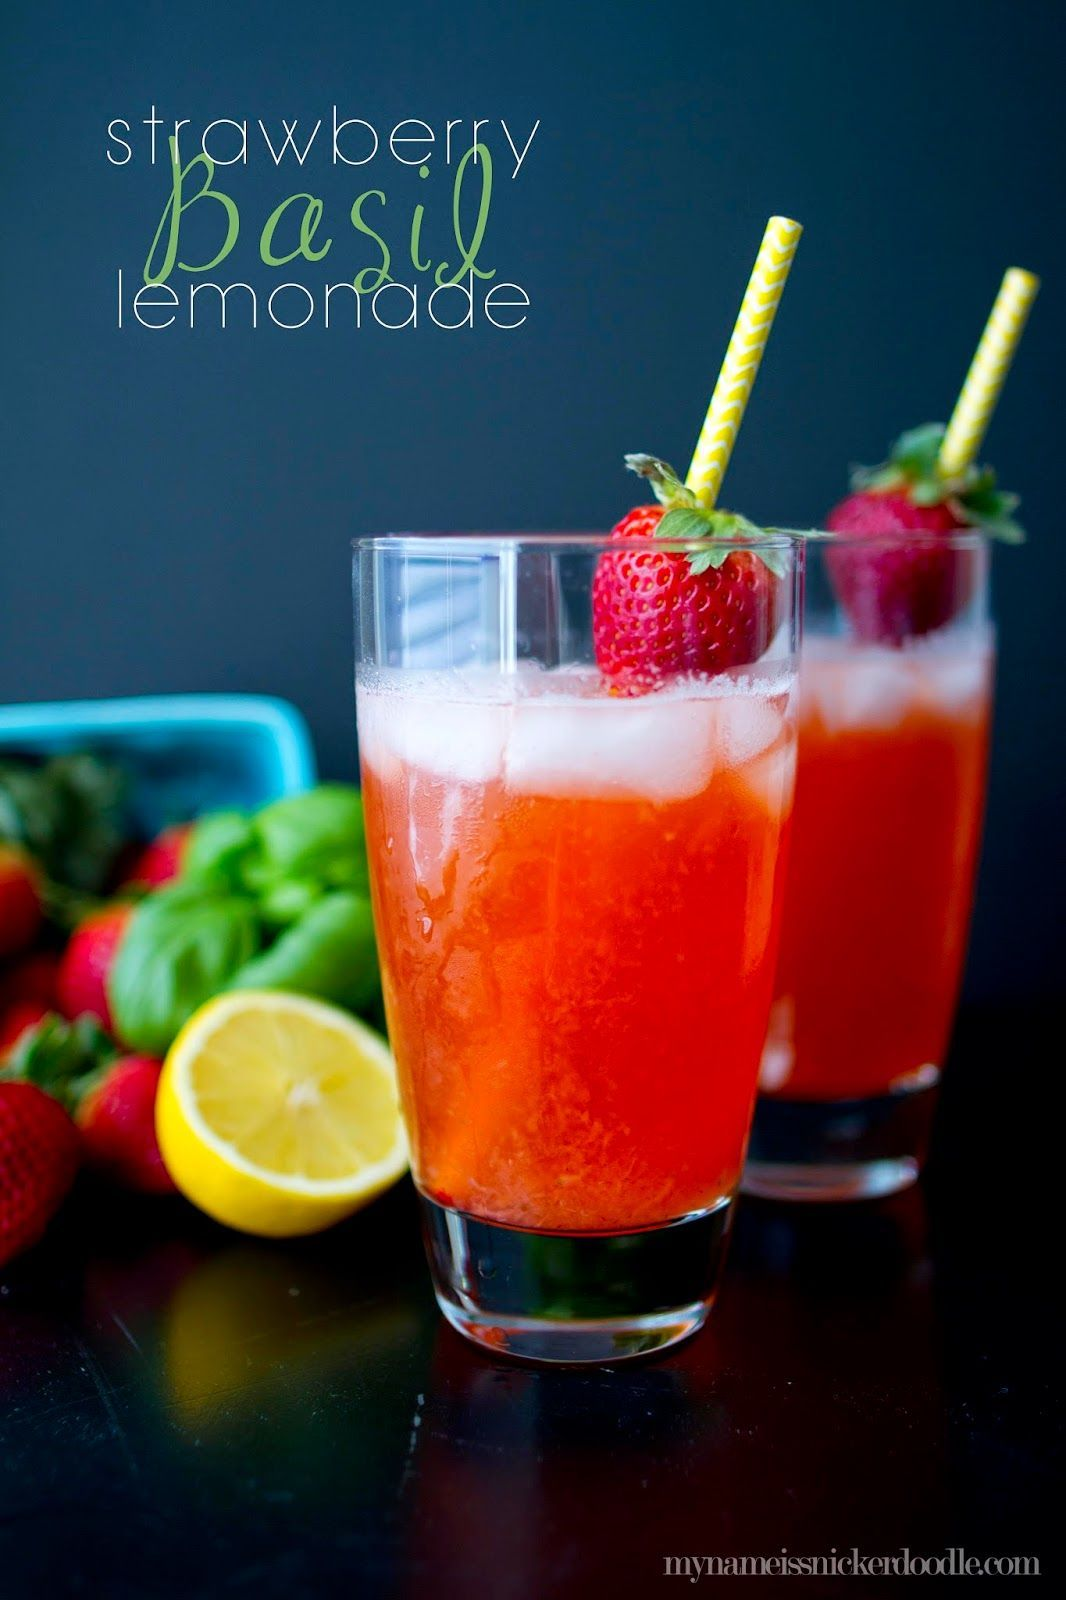 Strawberry Basil Lemonade #basillemonade This Strawberry Basil Lemonade recipe is super easy and so quenching!  The perfect sweet drink for spring and summer.  |  My Name Is Snickerdoodle #basillemonade